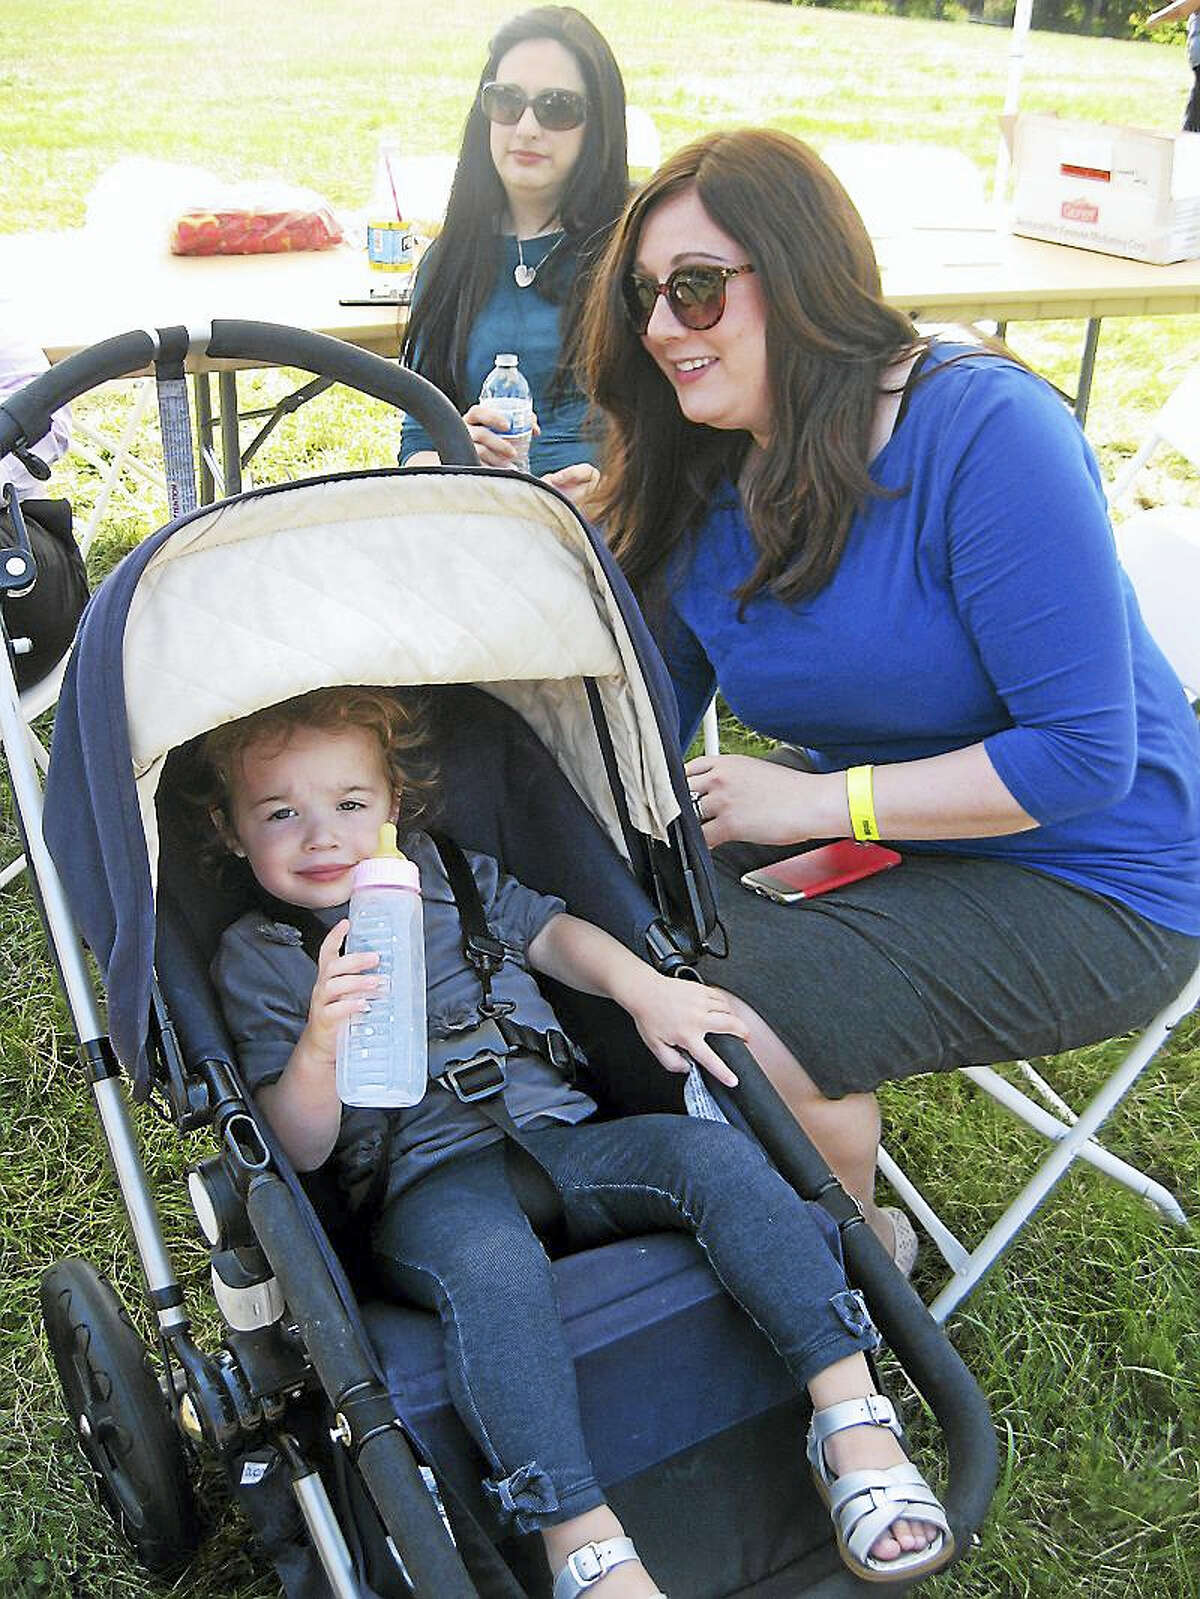 Little Sheva Kahan and her mom Liebo Kahn attended the Jewishfest Sunday.Photo by John Torsiello